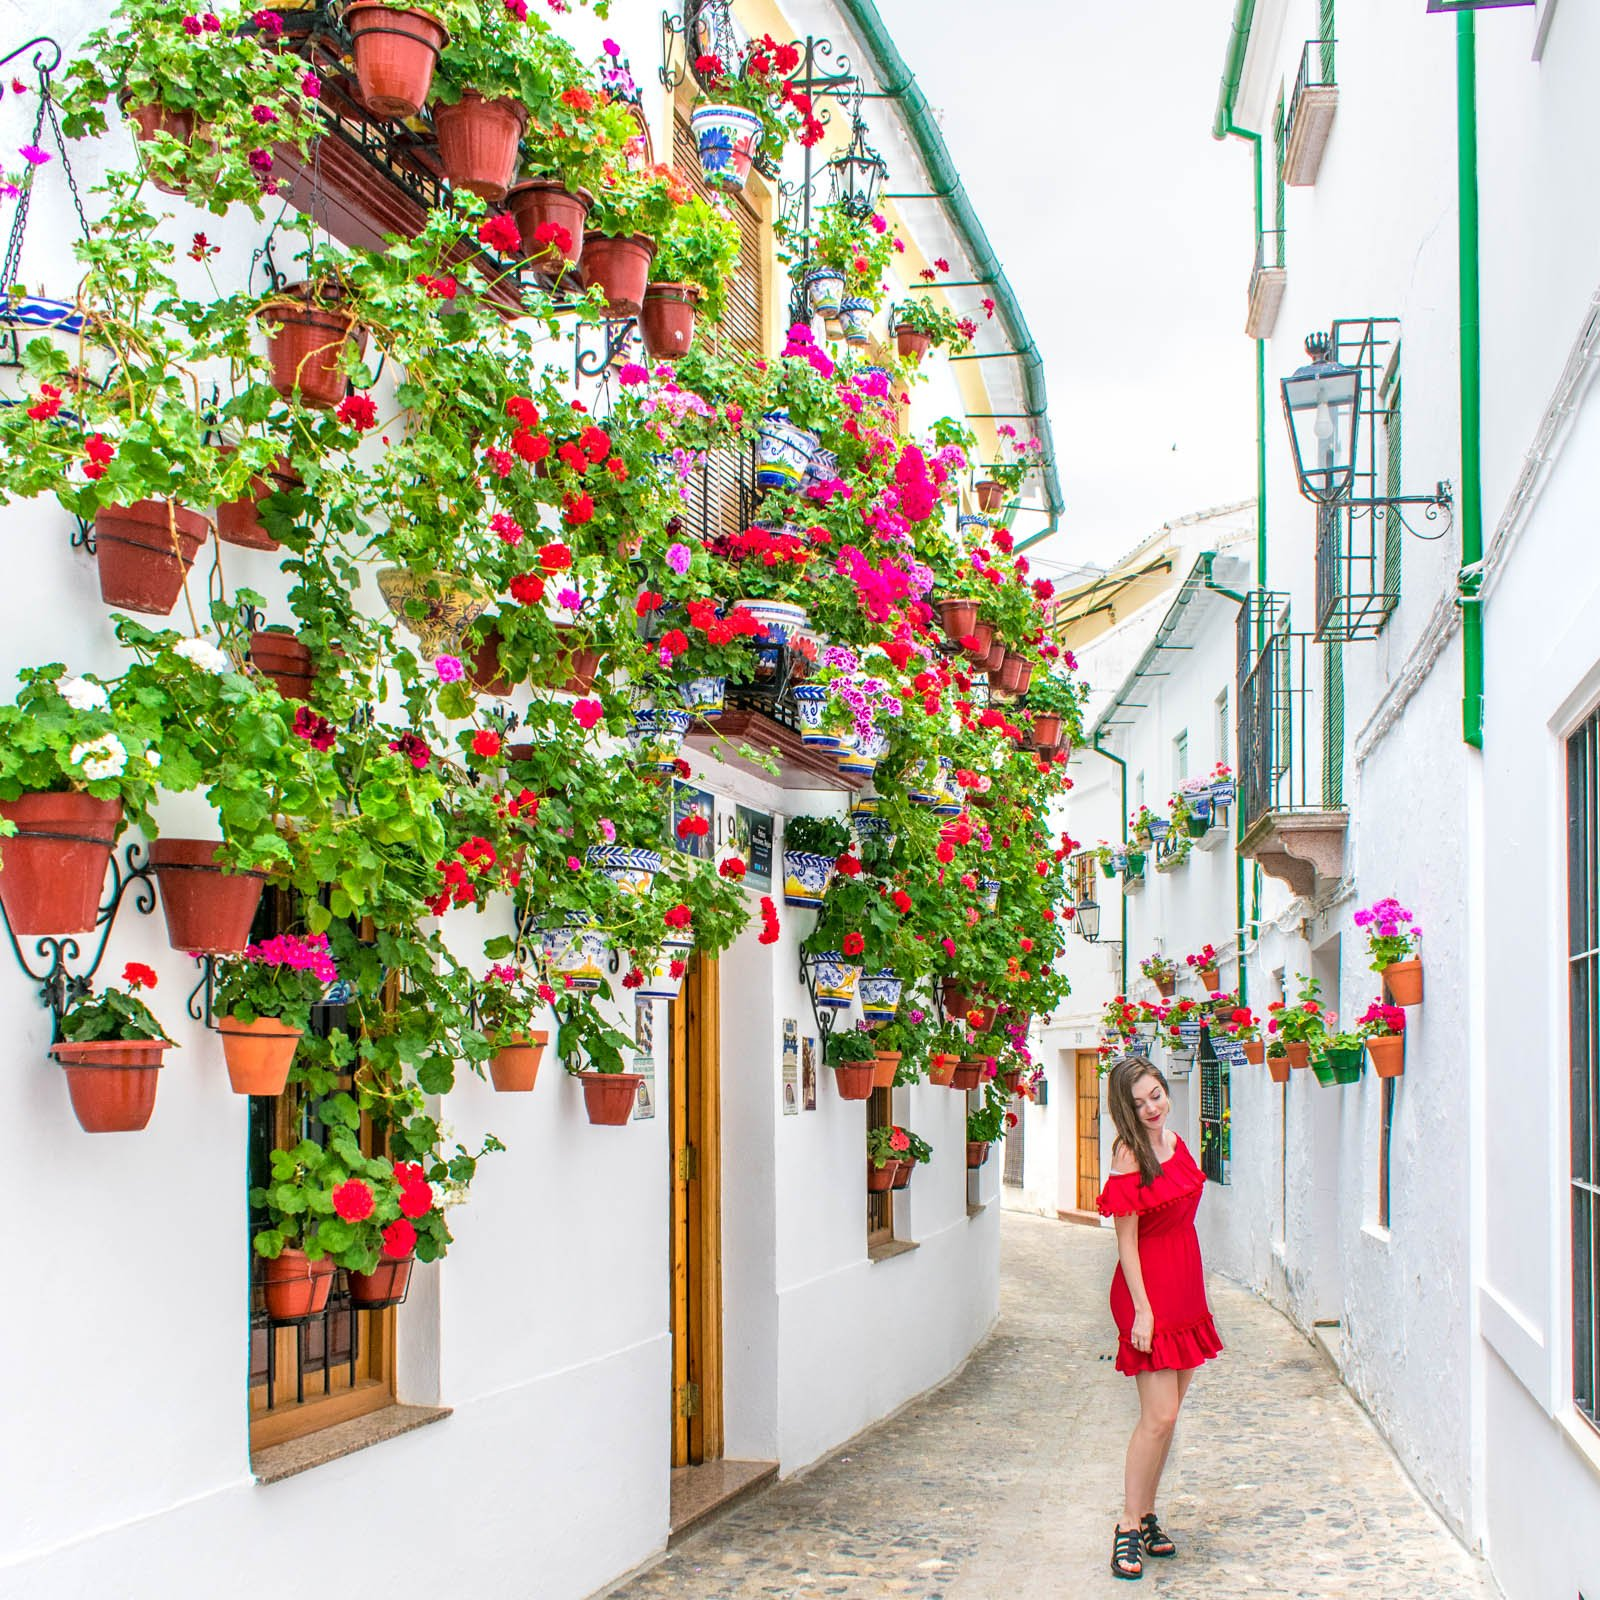 The best times to visit Spain will vary depending on your ideal itinerary. So, let's dive into the top reasons to visit during each season of the year. #visitspain #spain #spaintravel